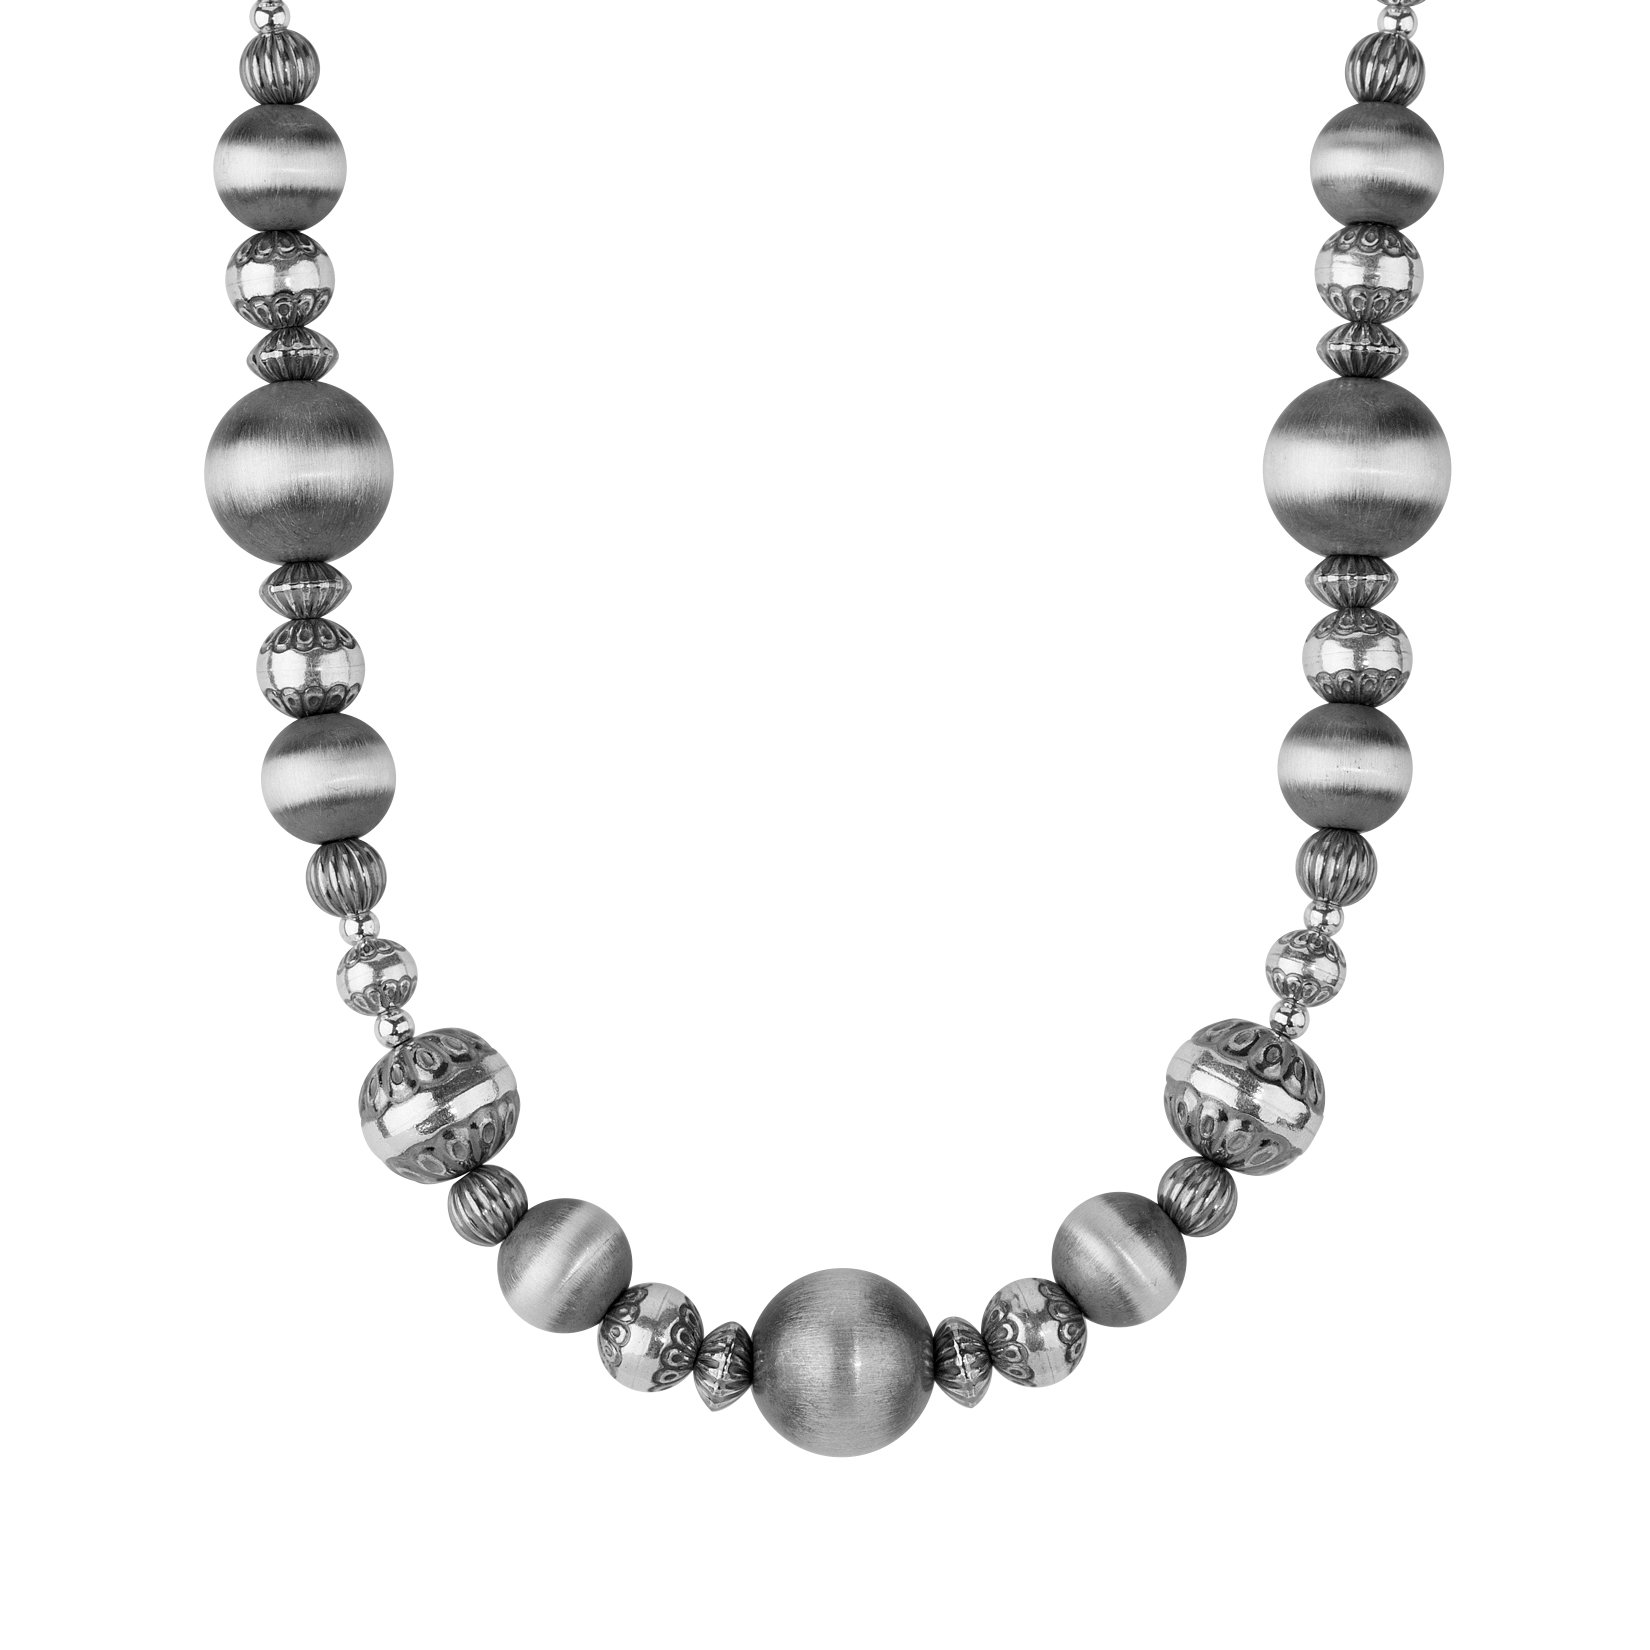 Sterling Silver Stamped Bead Necklace, 21 Inch by American West